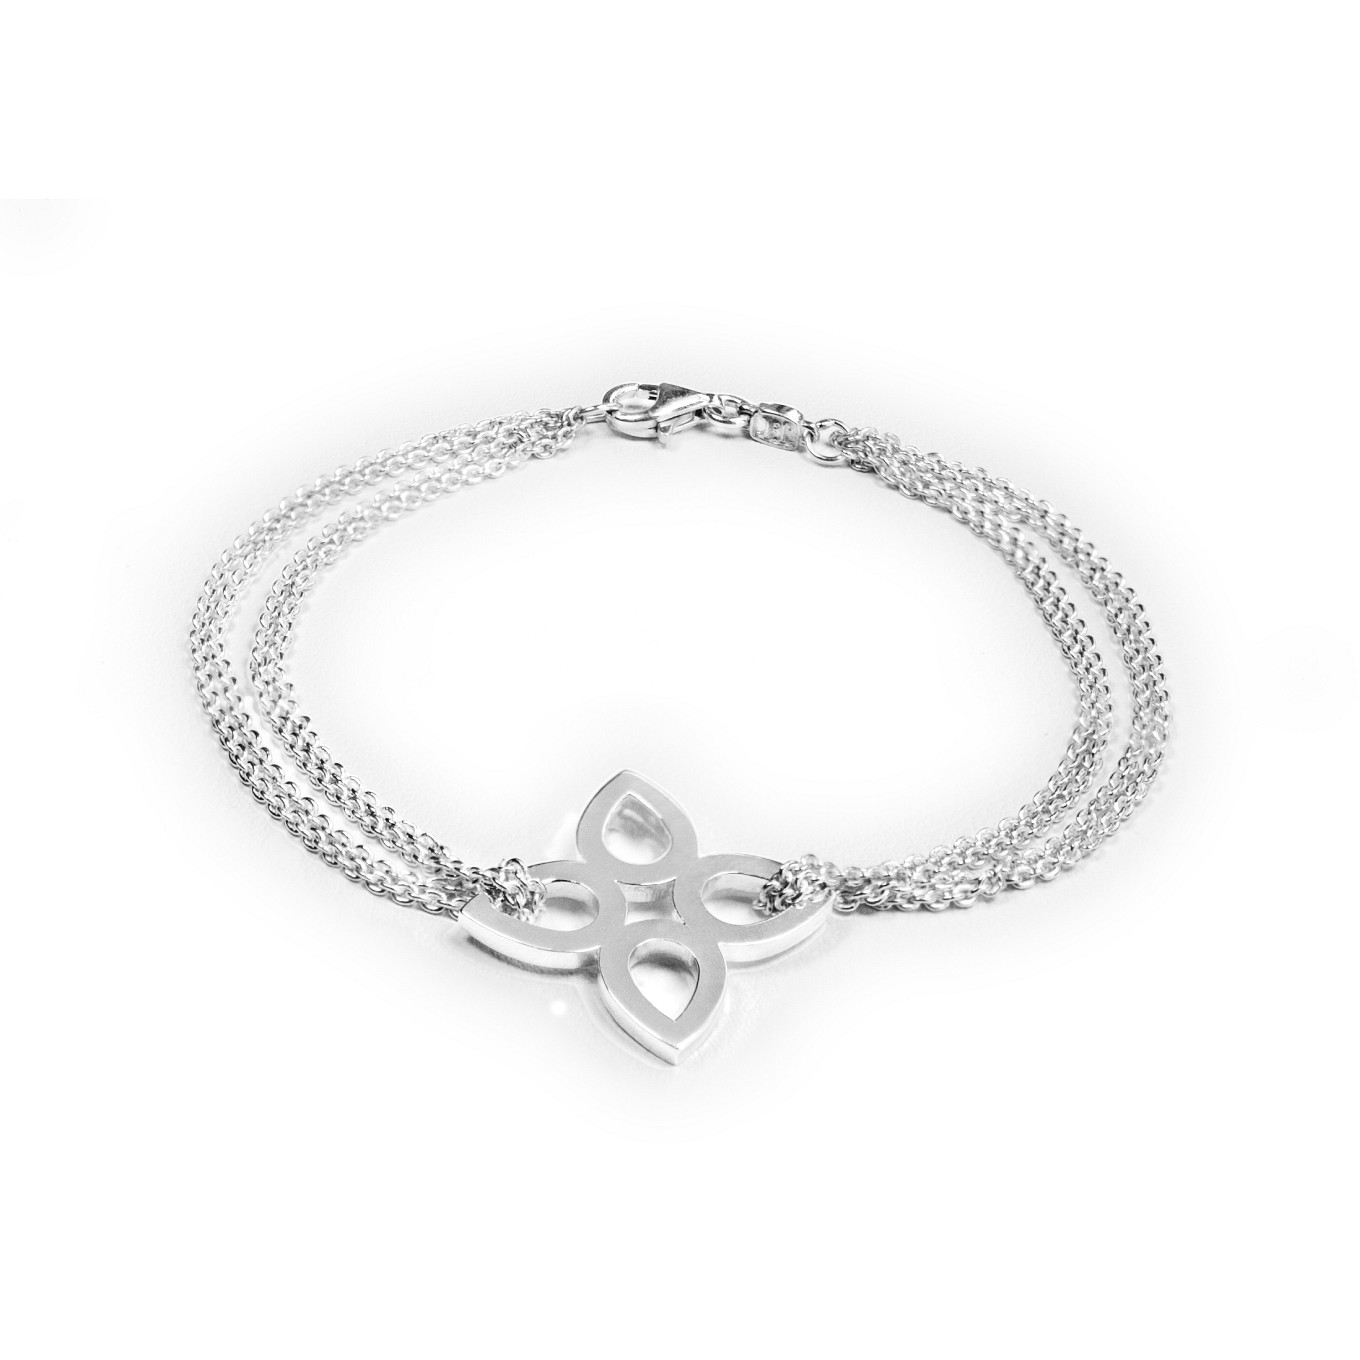 STERLING FLAT SEVILLA BRACELET WITH DOUBLE CHAIN